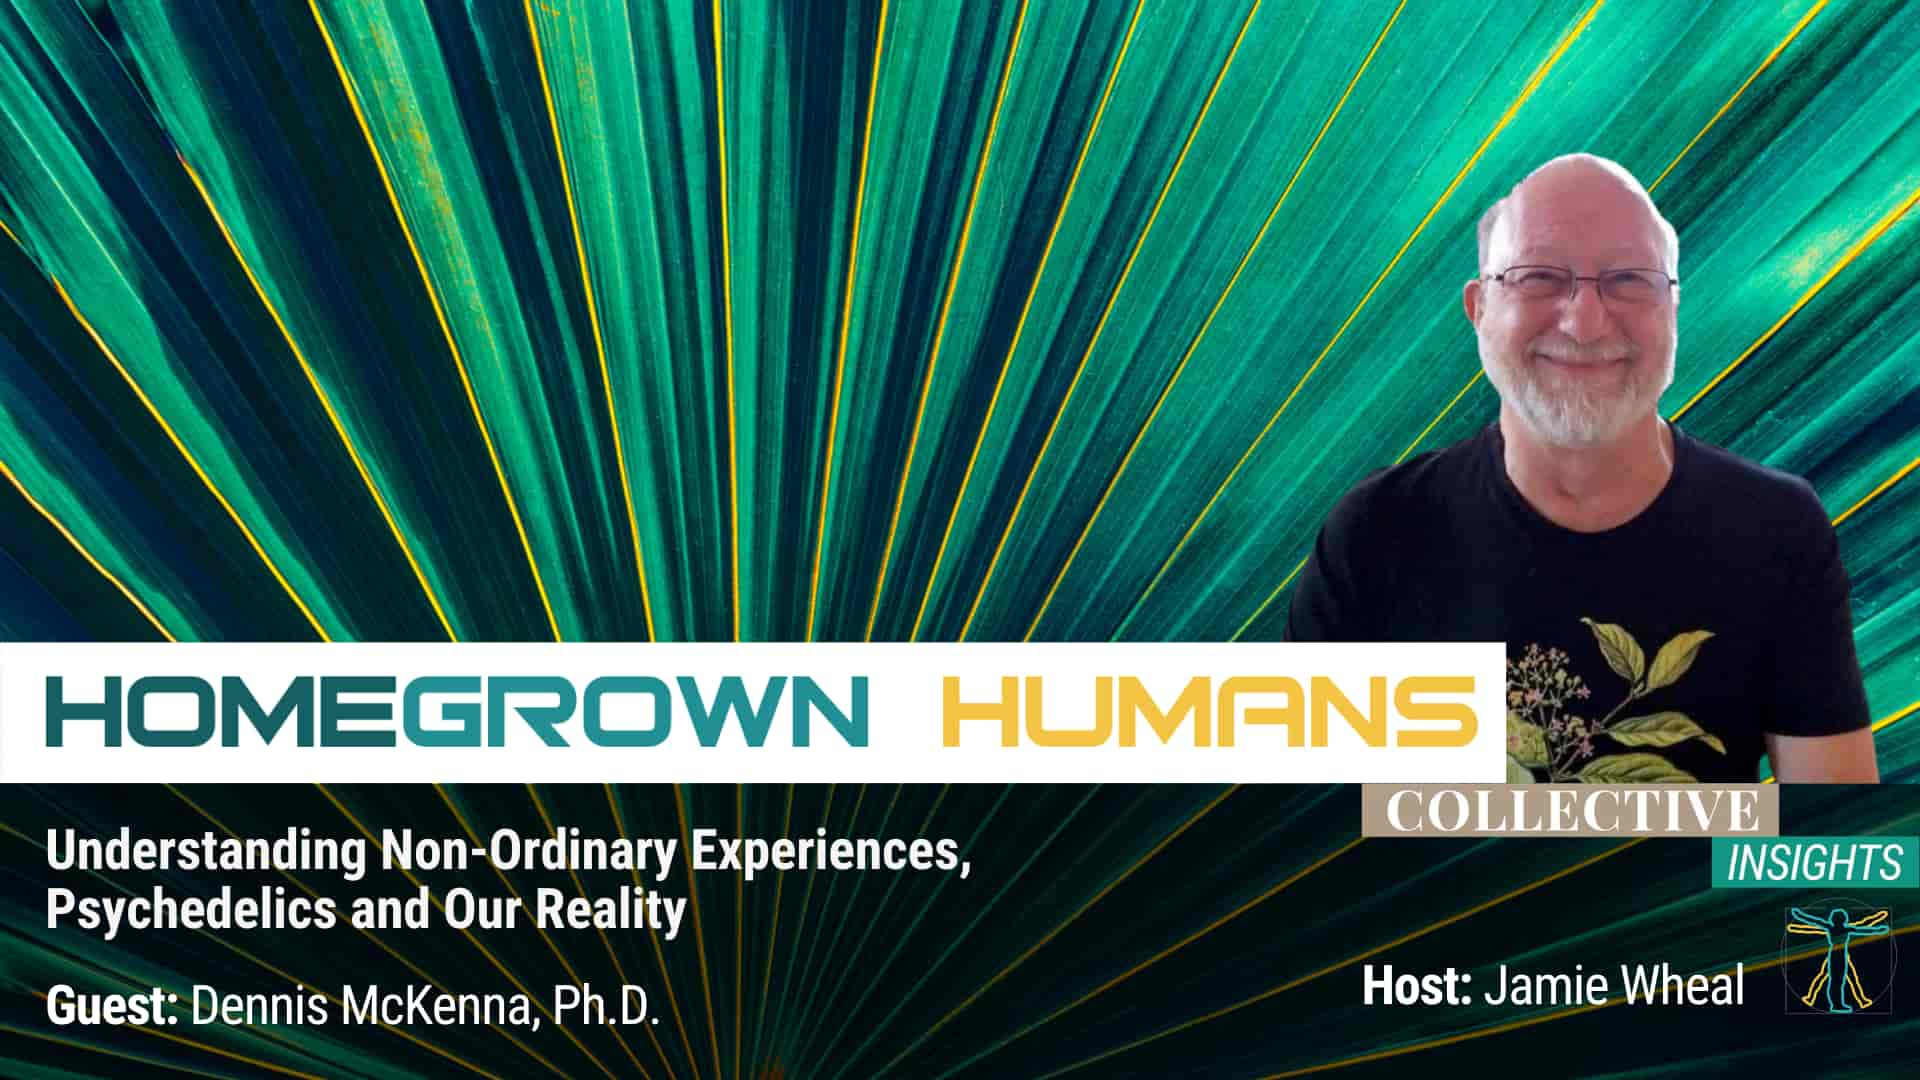 HomeGrown Humans - Dennis McKenna - Non-Ordinary Experiences and Psychedelics - Hosted by Jamie Wheal